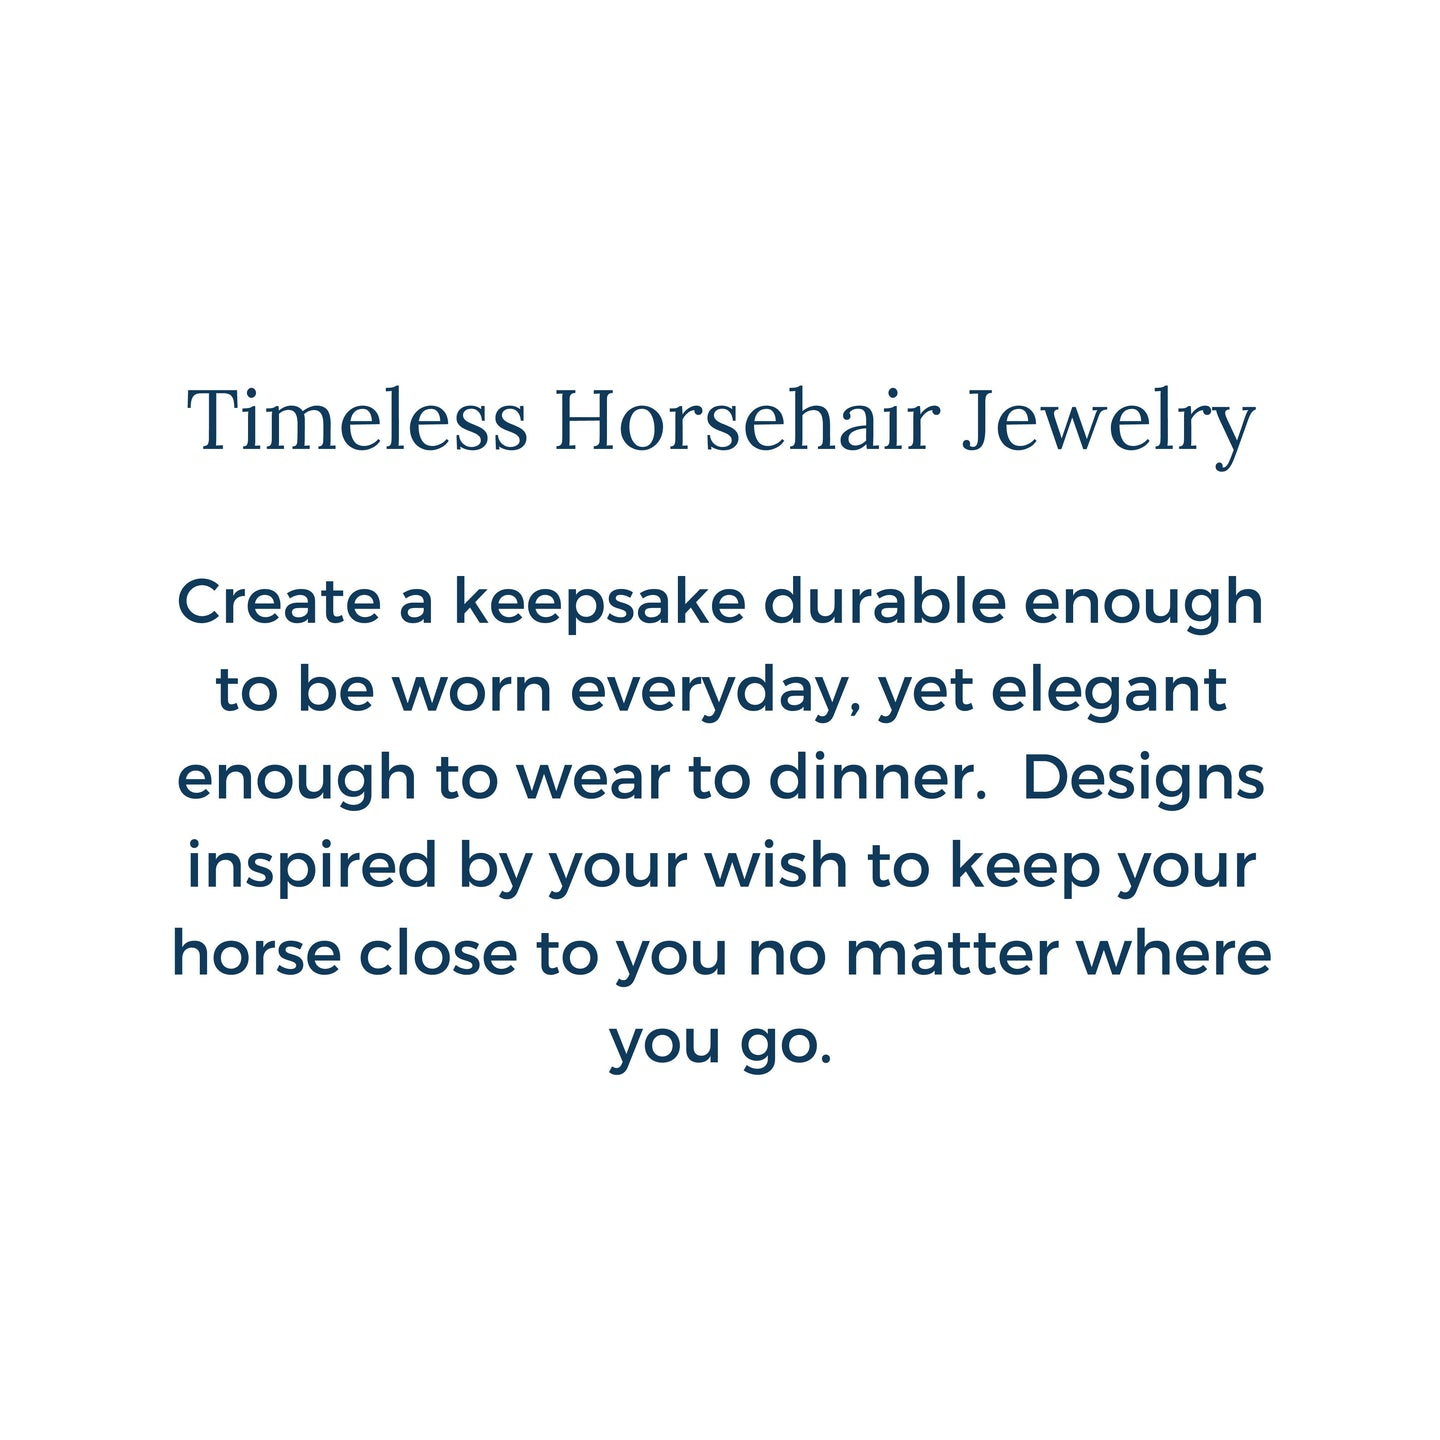 Timeless horsehair jewelry